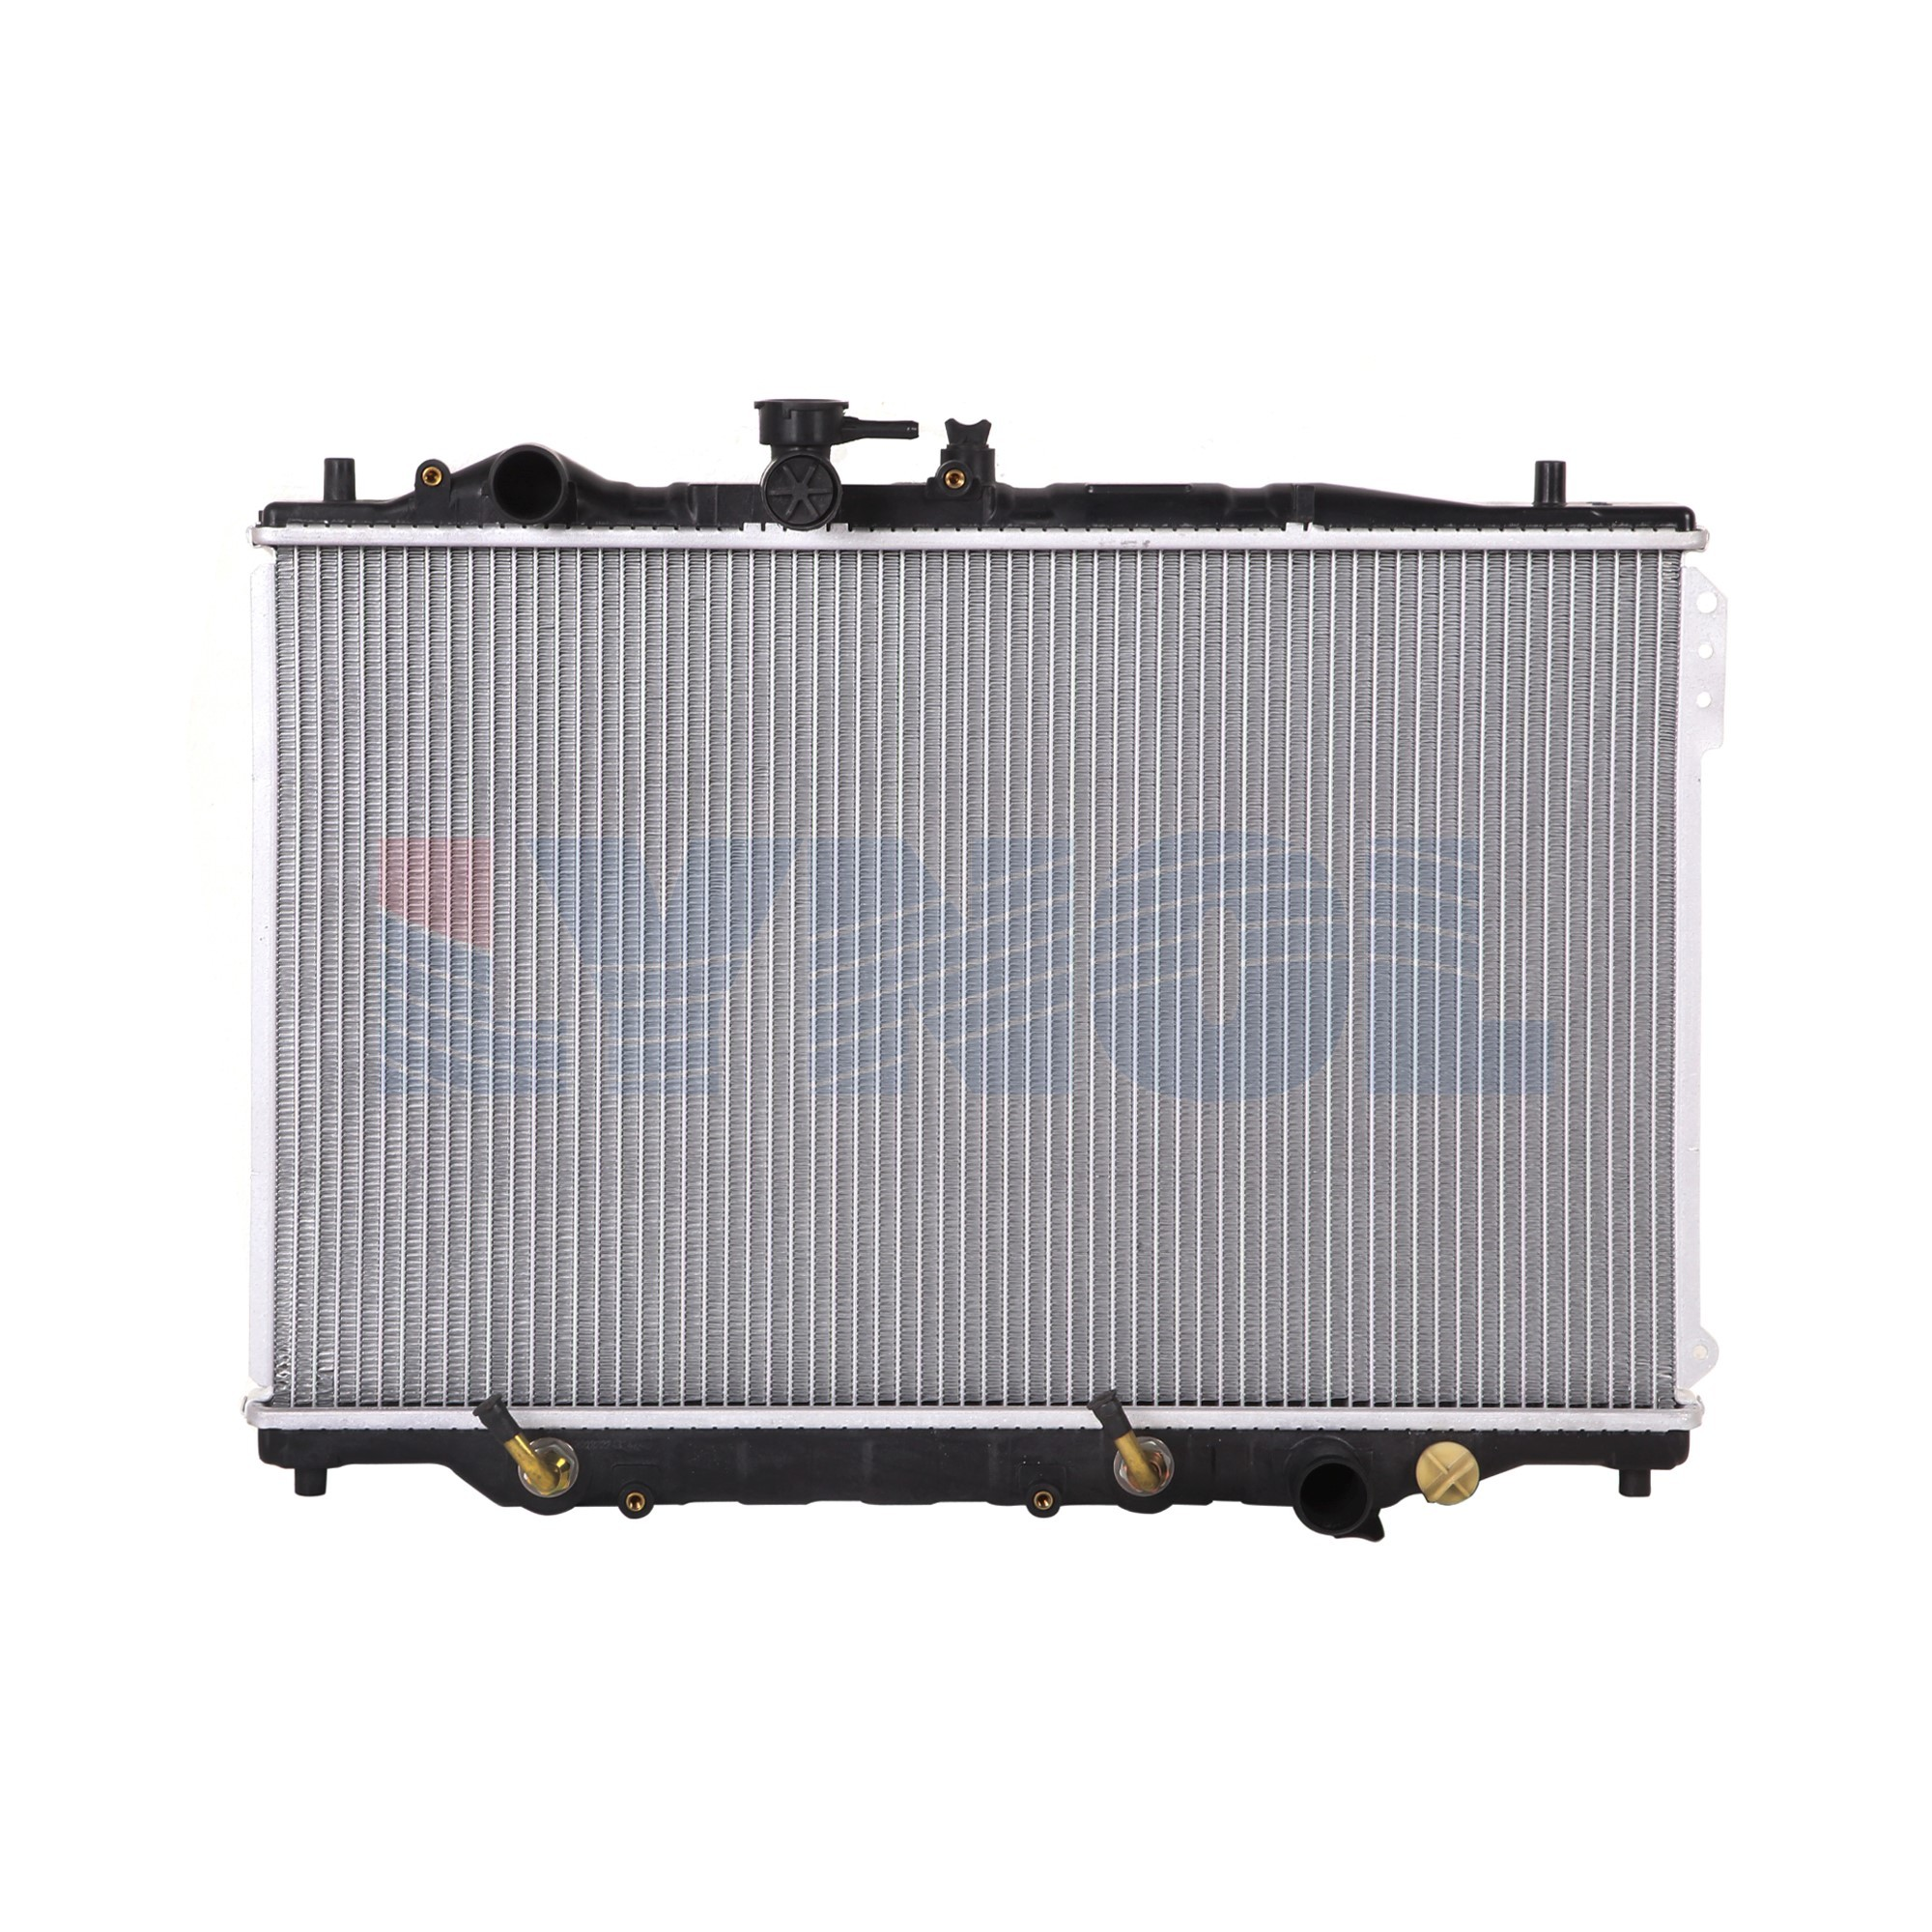 LR0248E - RADIATOR  - SAME WITH LR0248,88-92 MAZDA 626/MX-6/FD PROBE A/T